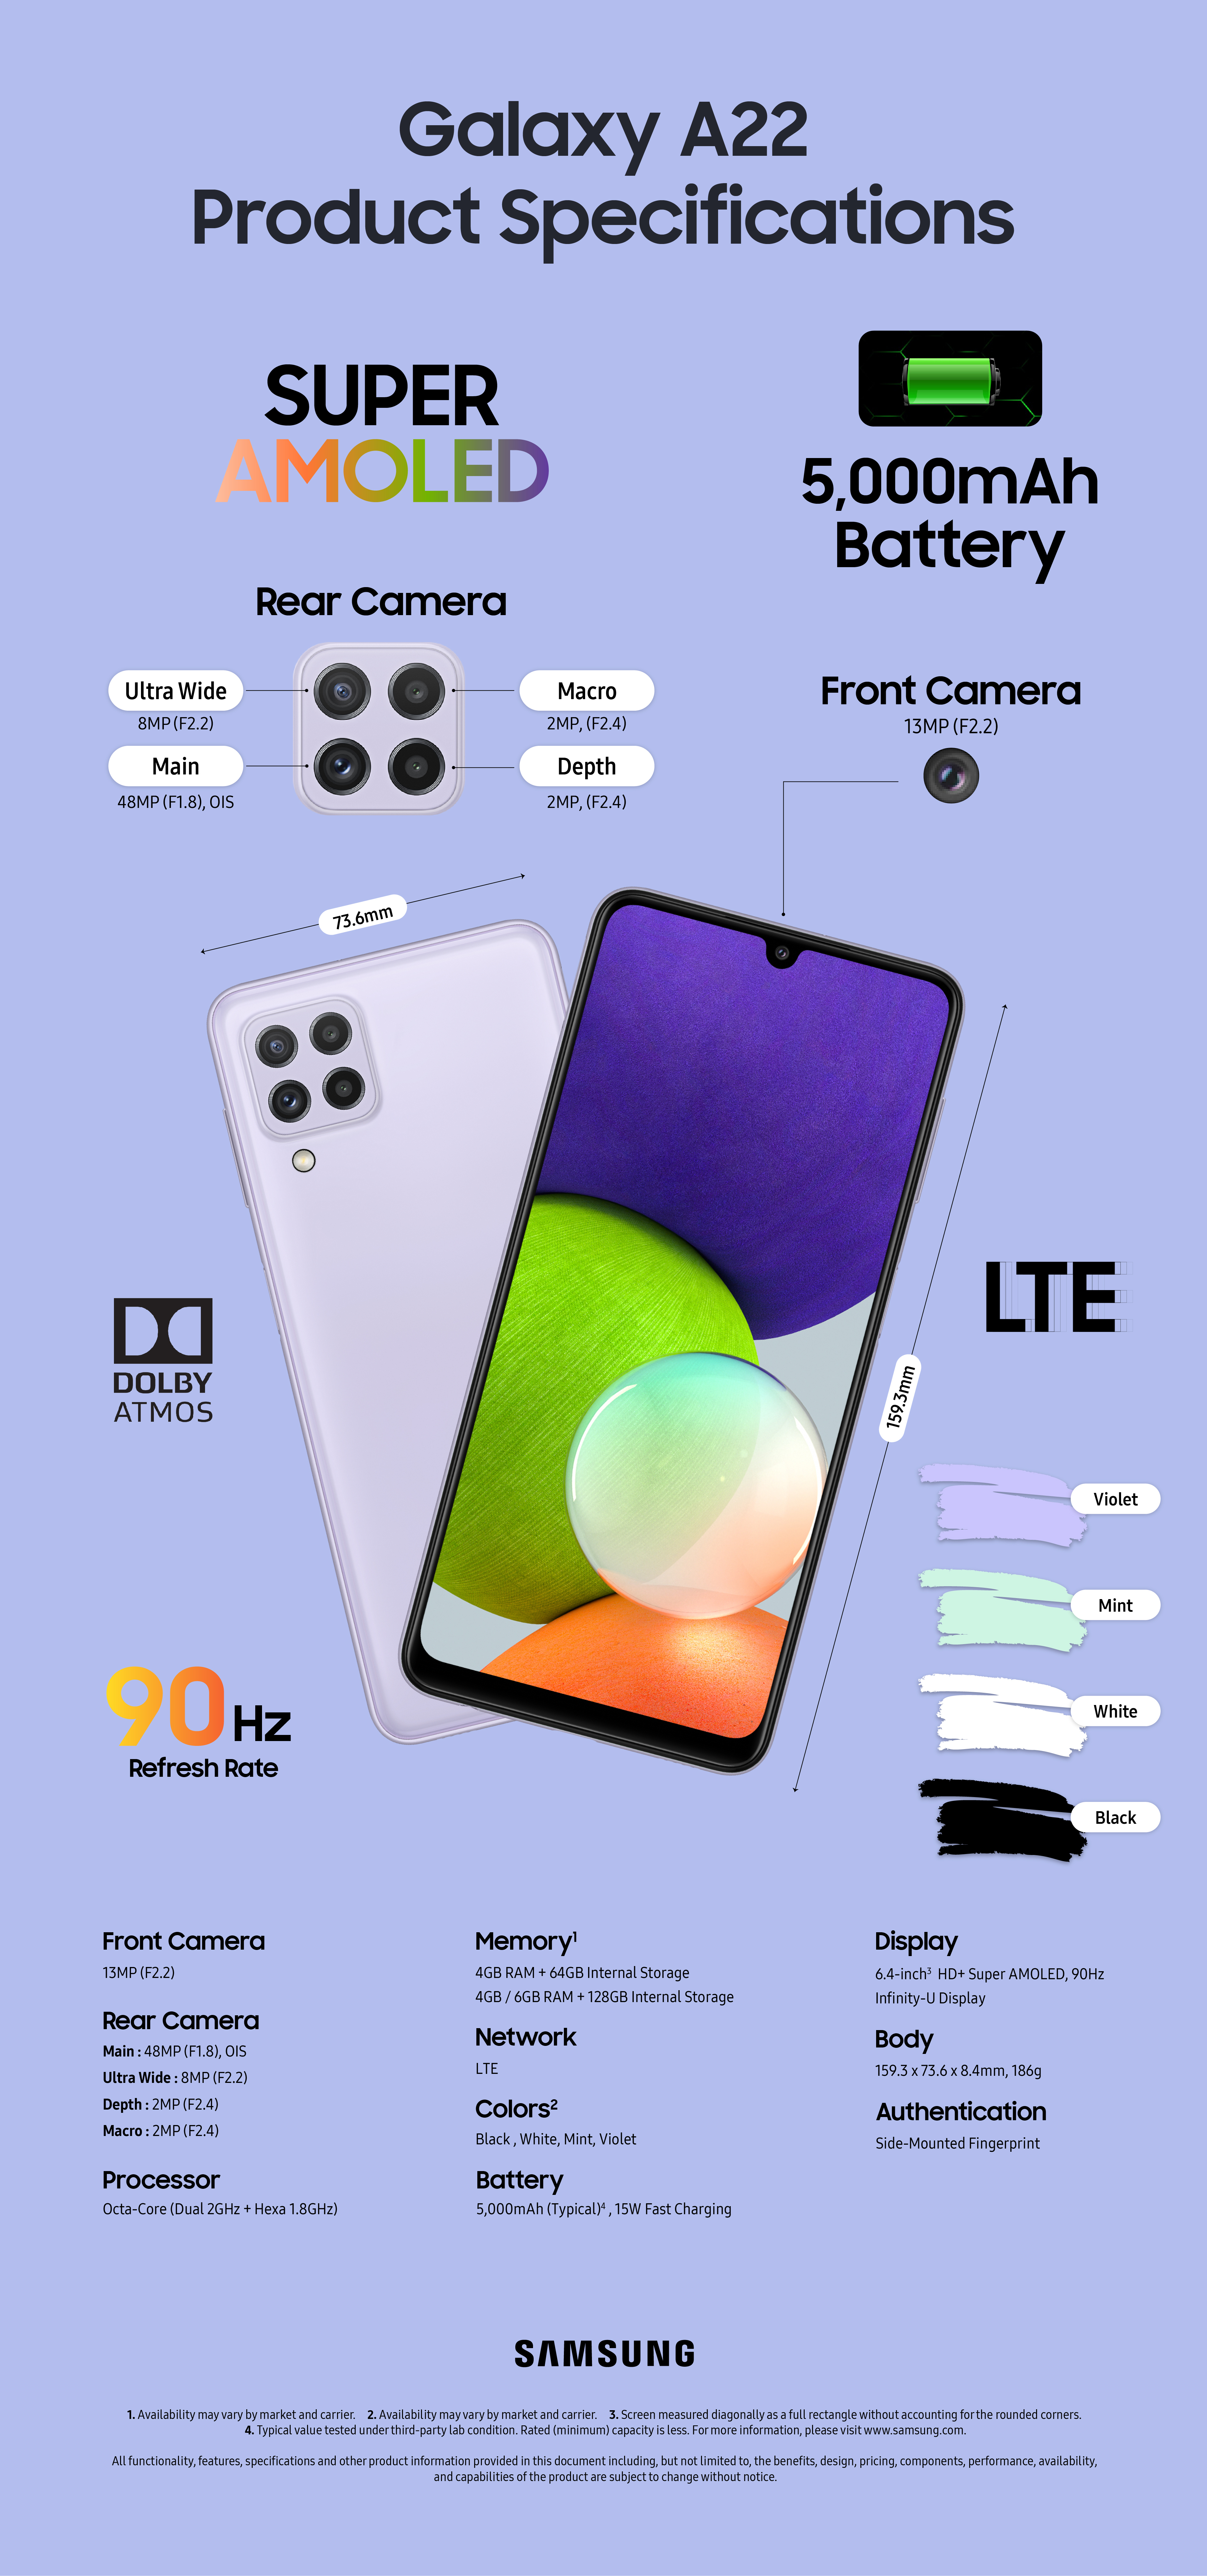 Samsung Galaxy A22 Specifications Infographic